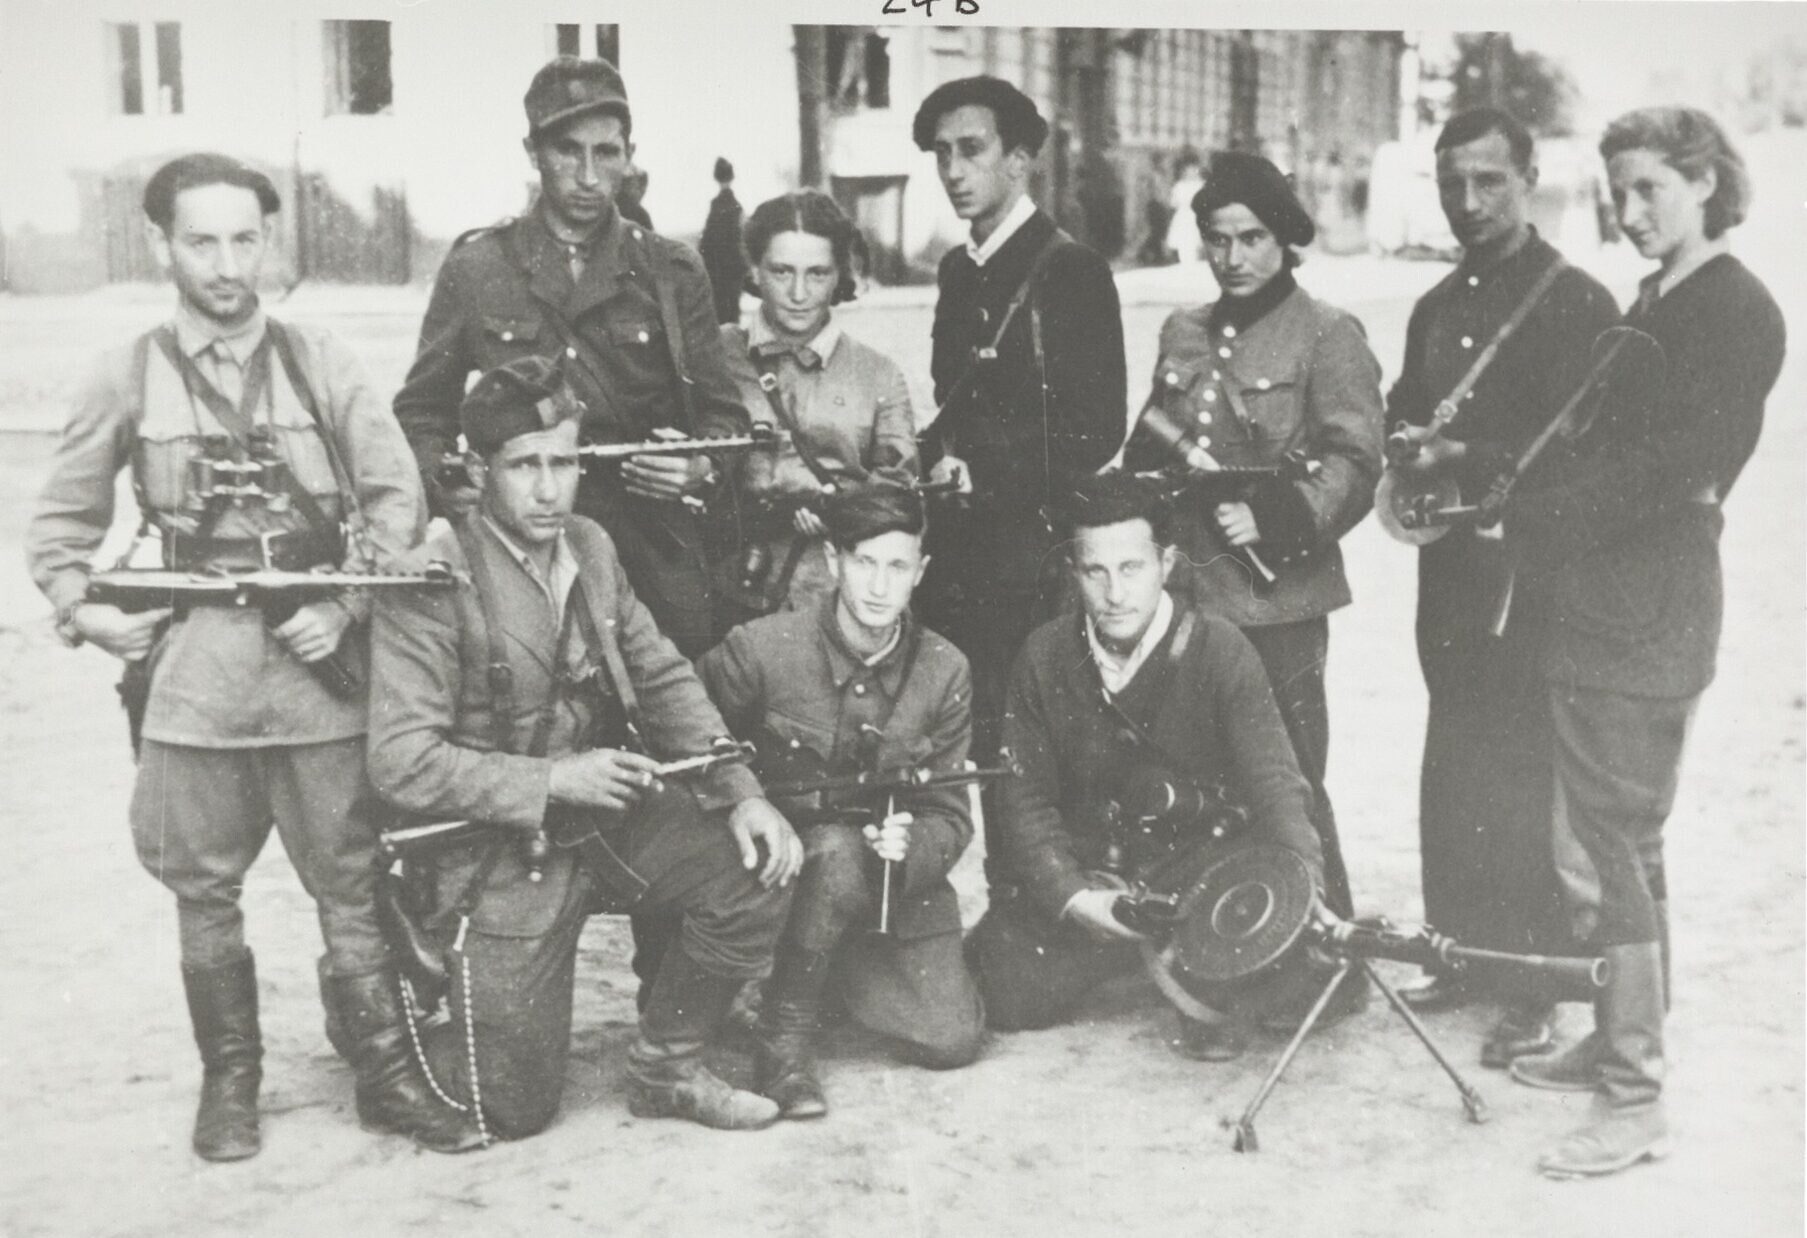 Jewish-Lithuanian partisan group The Avengers on their return to Vilna at the time of the Red Army's liberation of the city, July 1944. (Wiener Holocaust Library Collections)